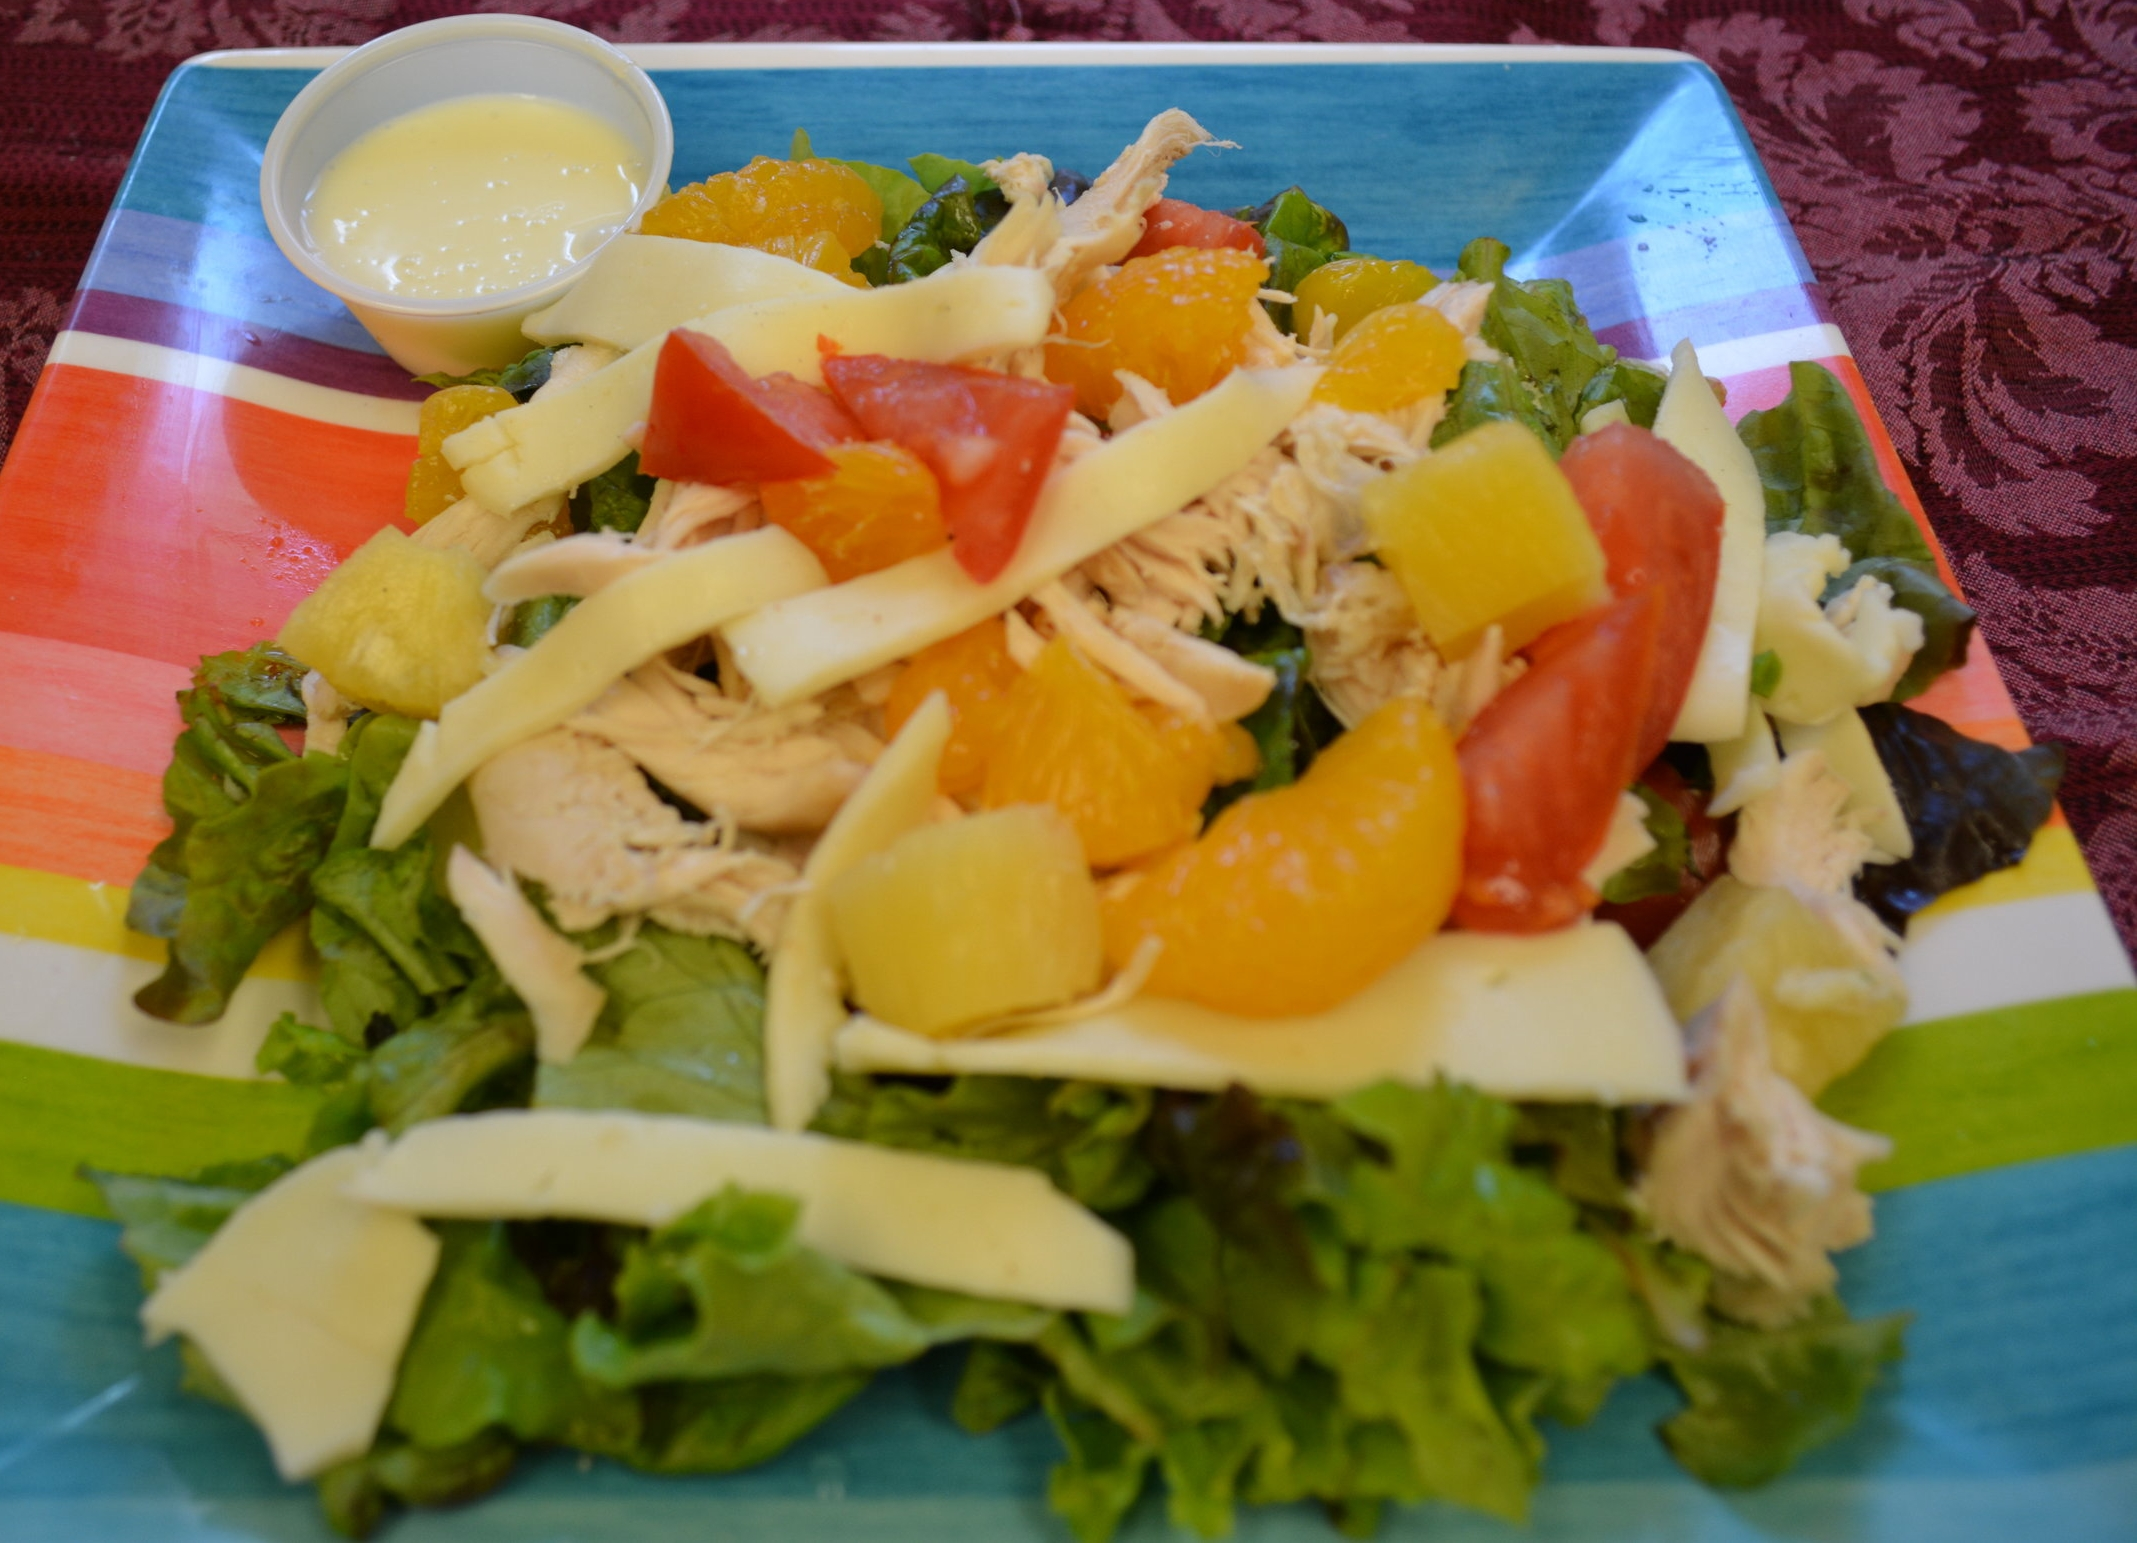 Island - Fresh lettuce, tomatoes, all white chicken breast, shredded cheddar cheese,pineapples and mandarin oranges, served with homemade lime dressing